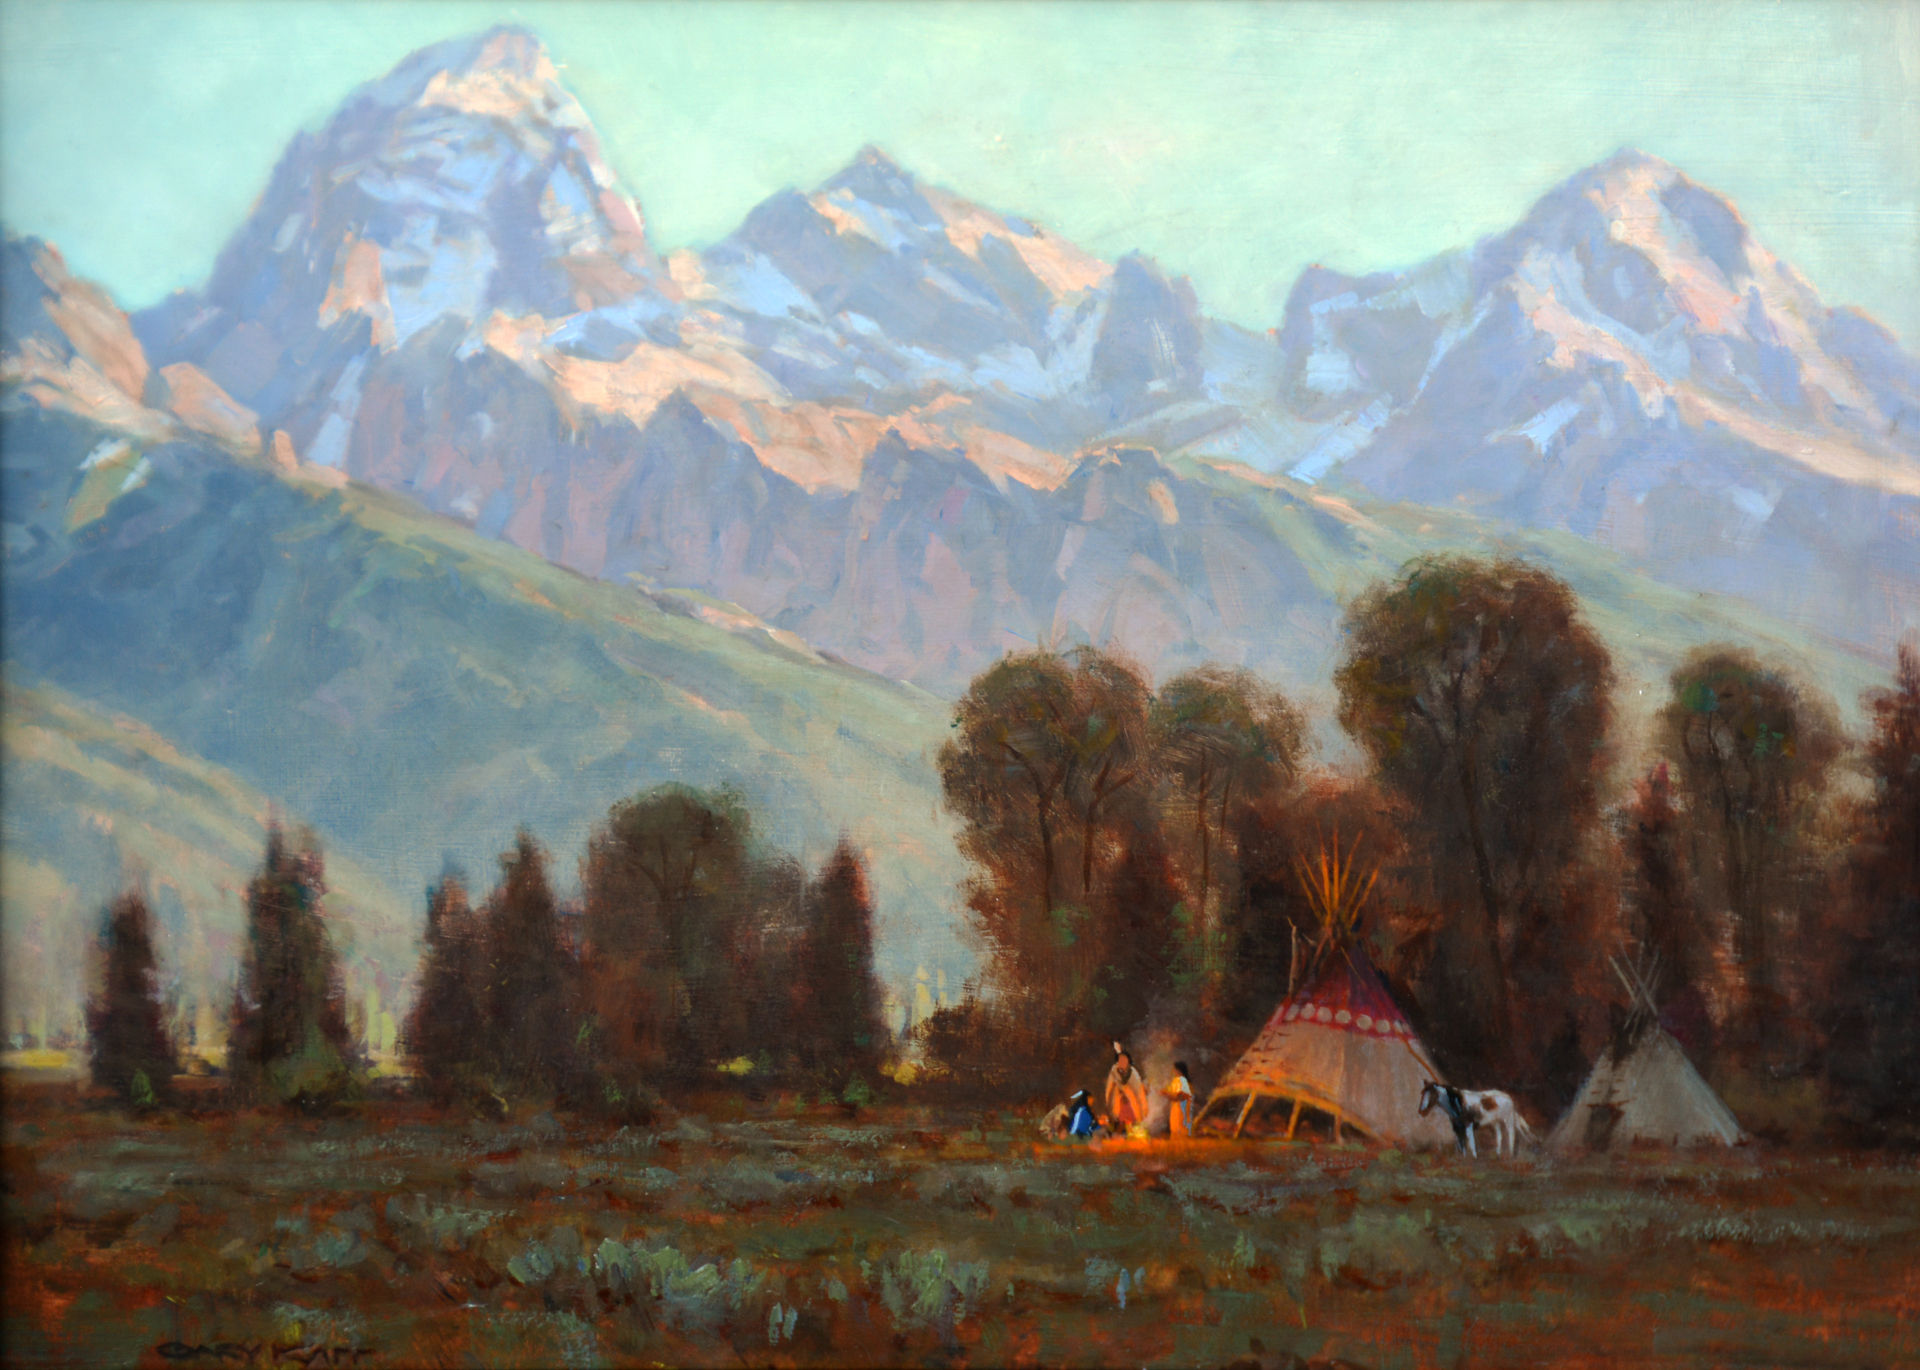 A New Day in the Tetons by Gary Kapp